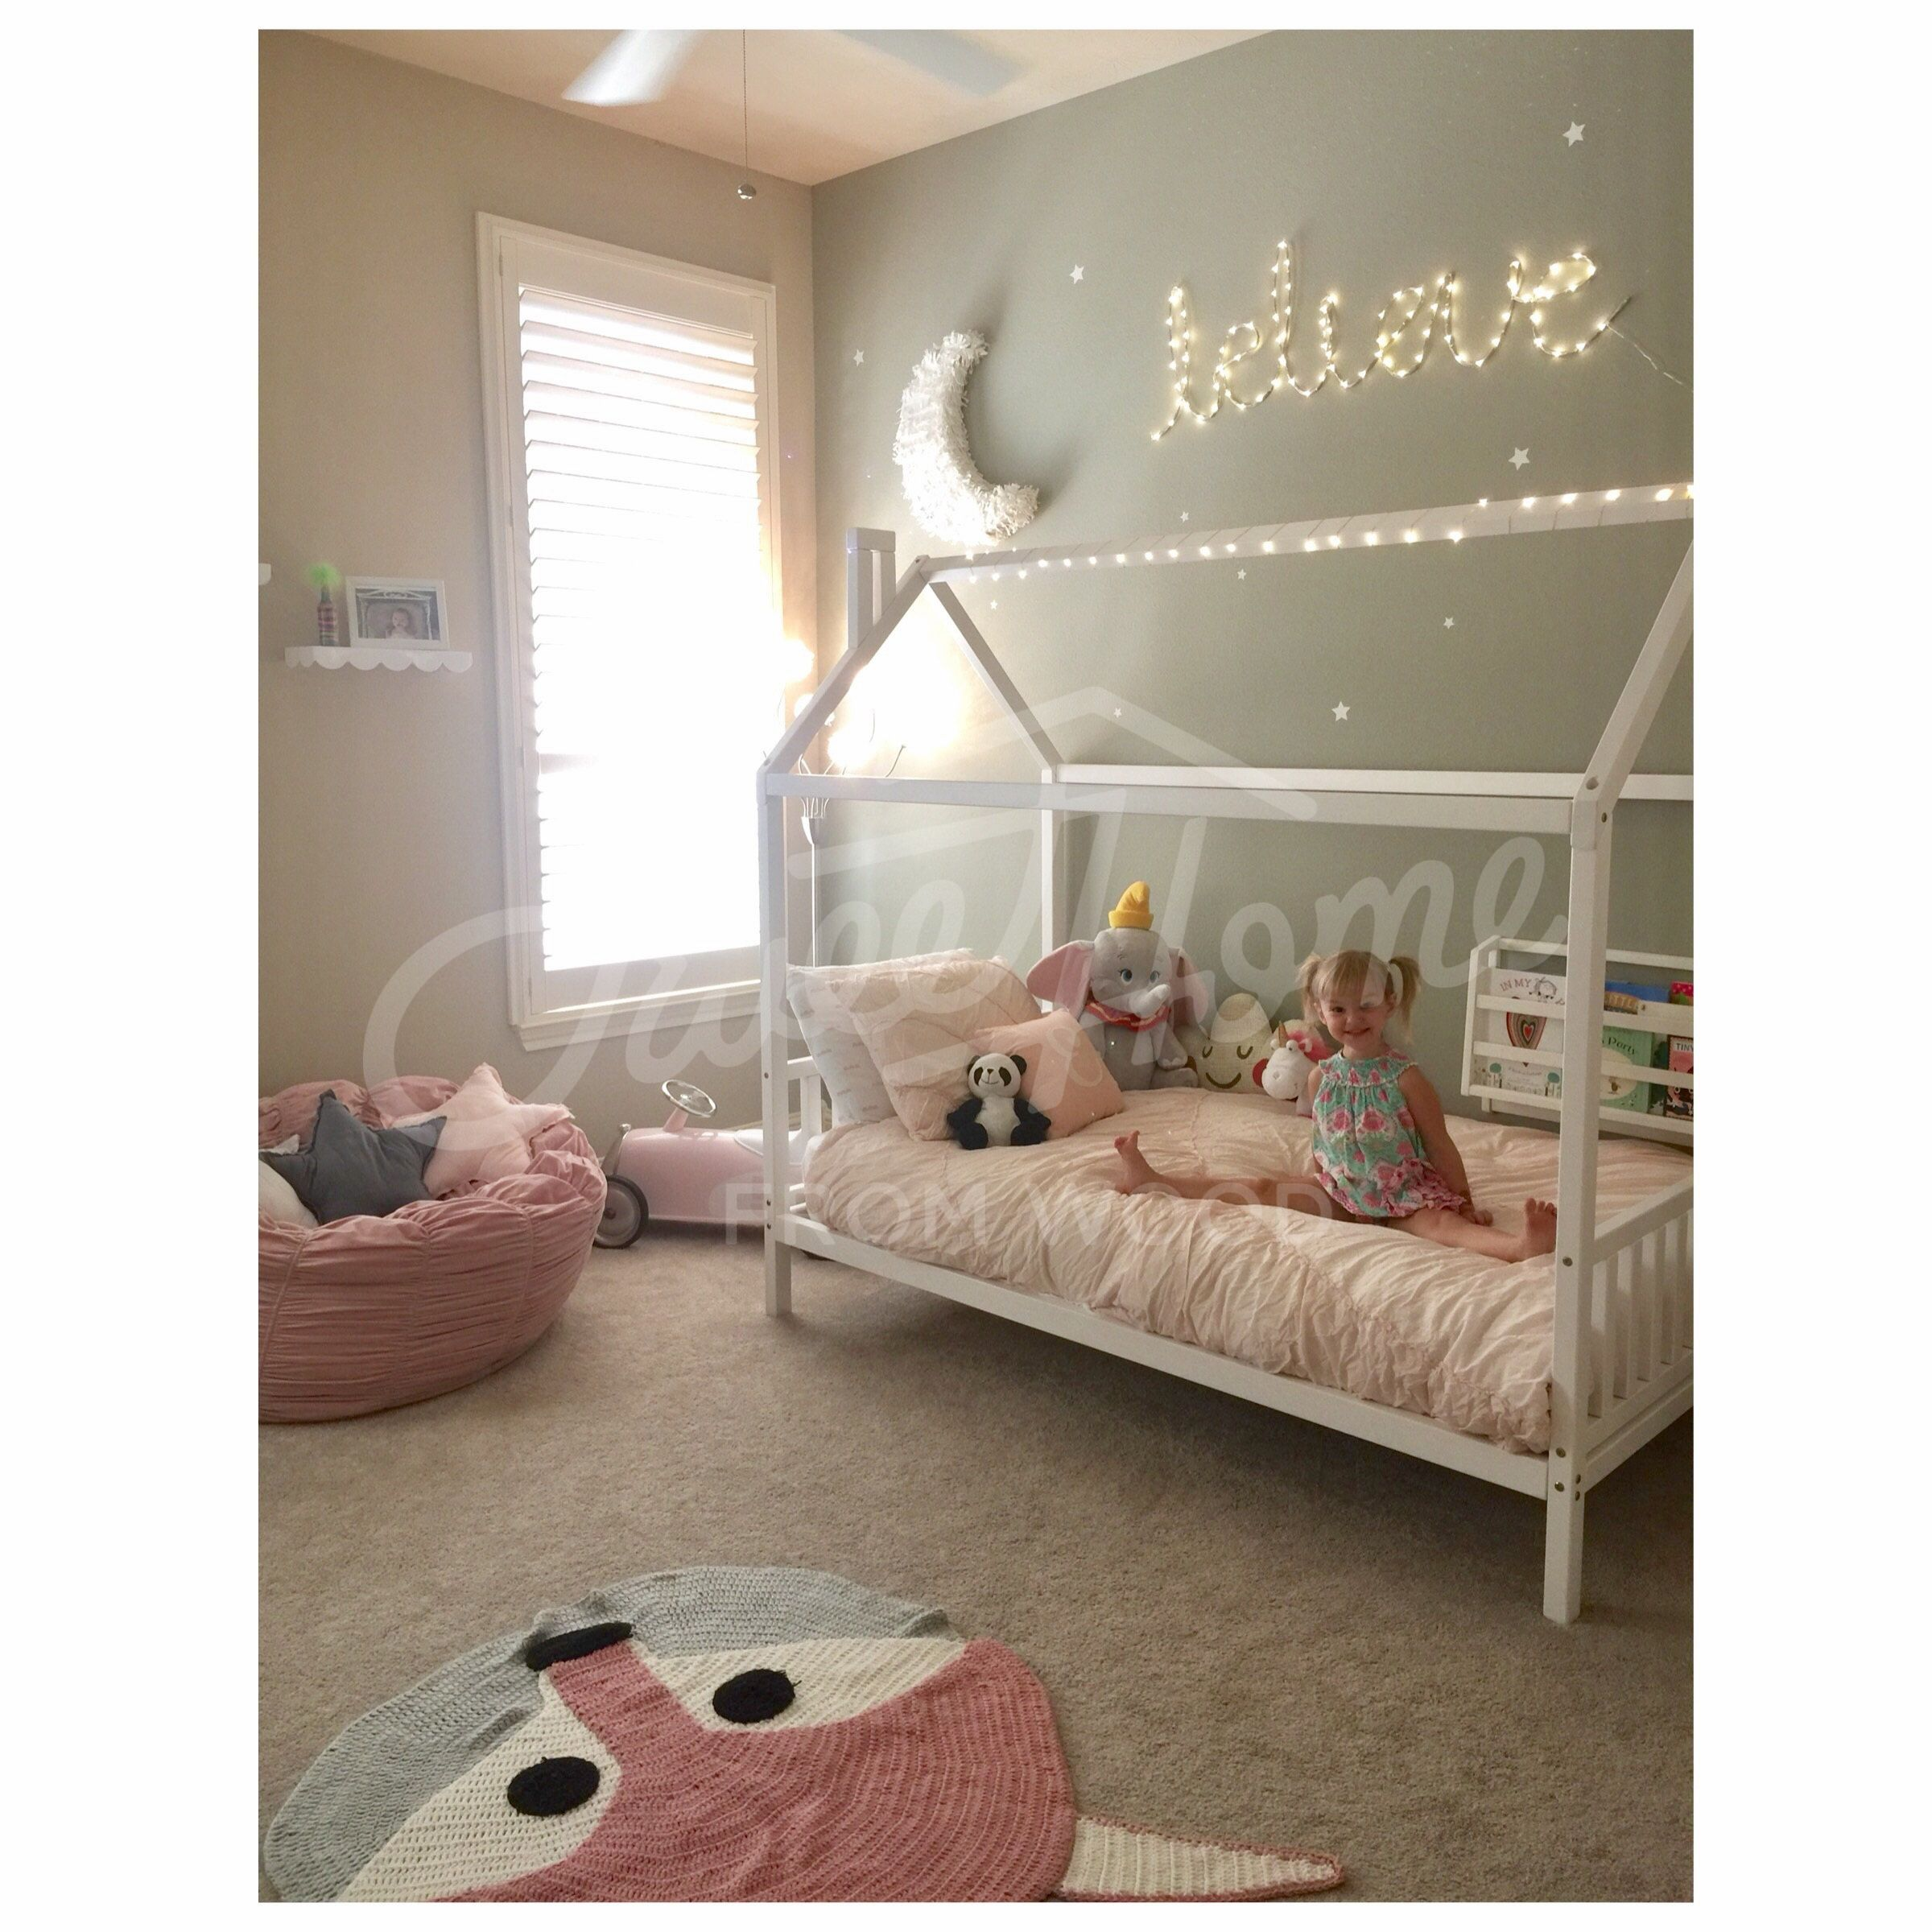 room pink and mint girls room interior bed house